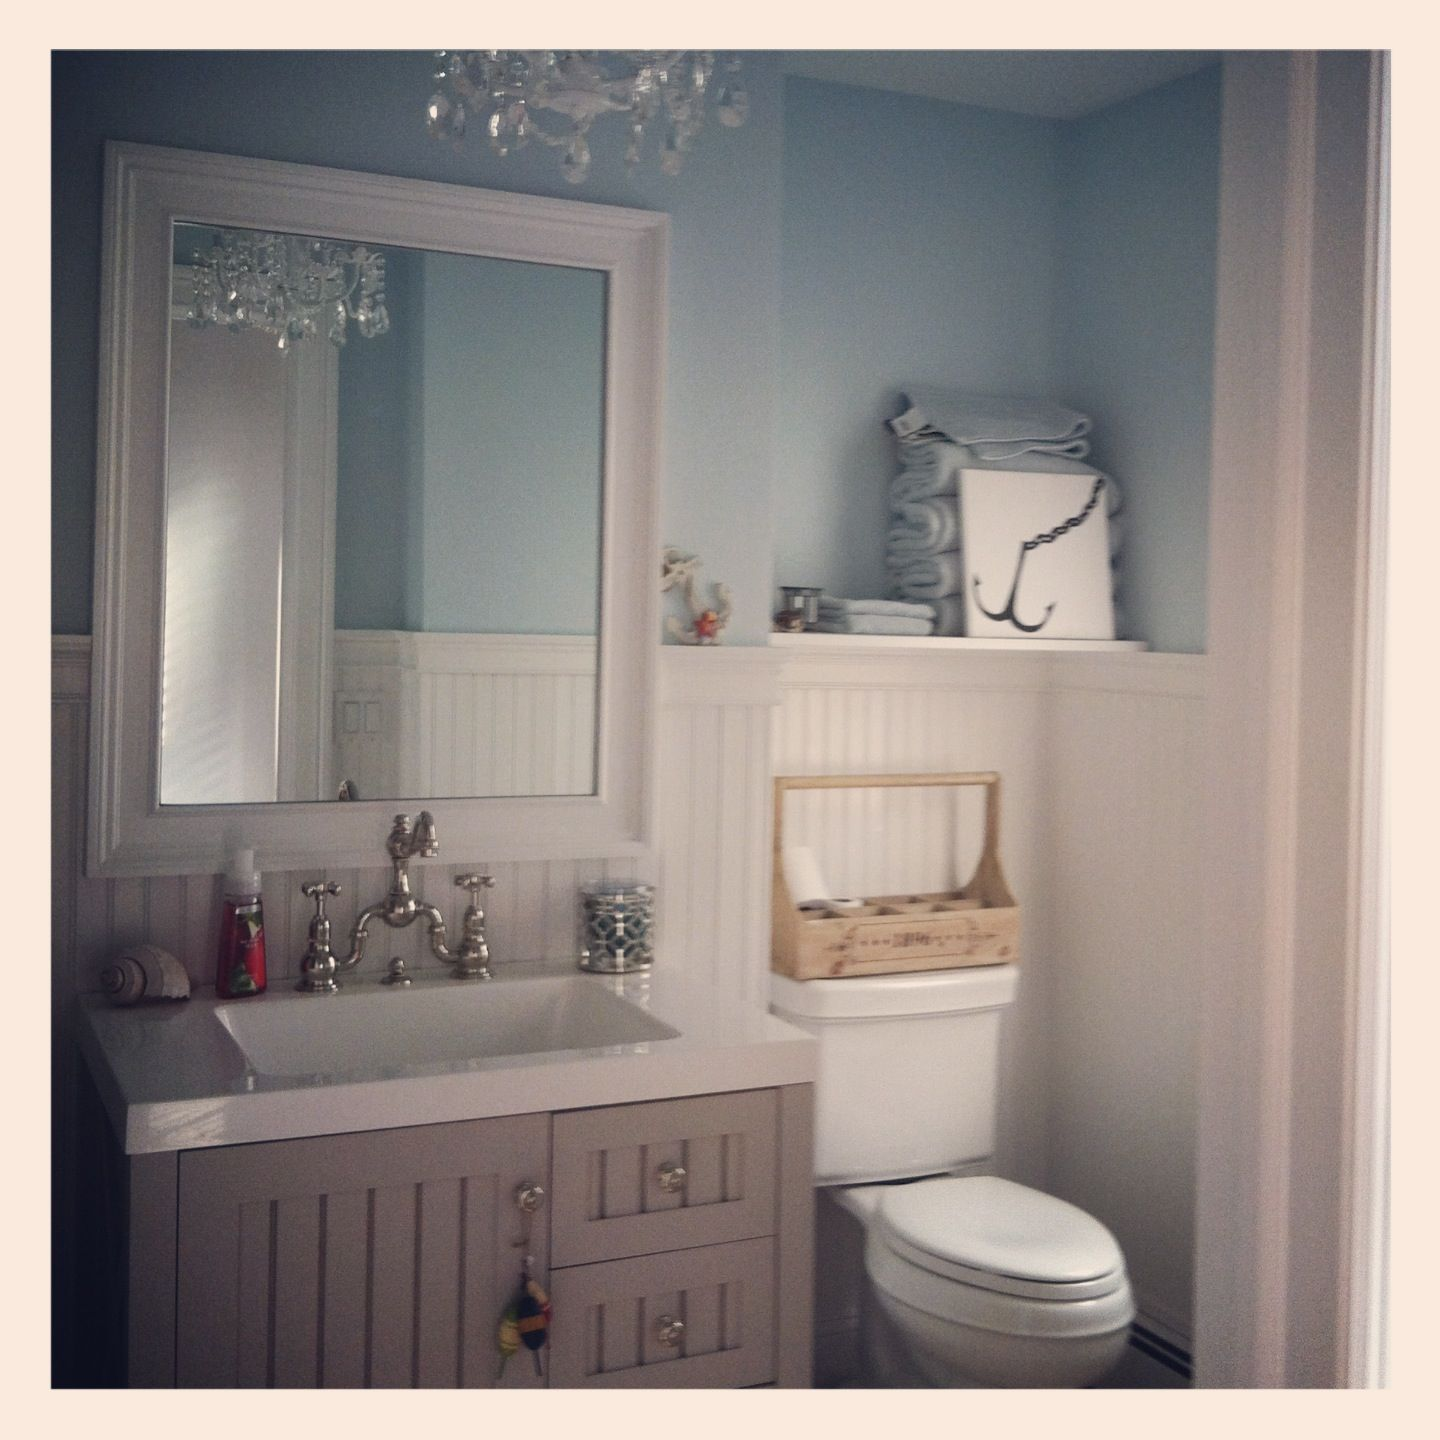 Beach House Bathroom Ideas: My Hanptons Beach Cottage Bathroom #beach #decor